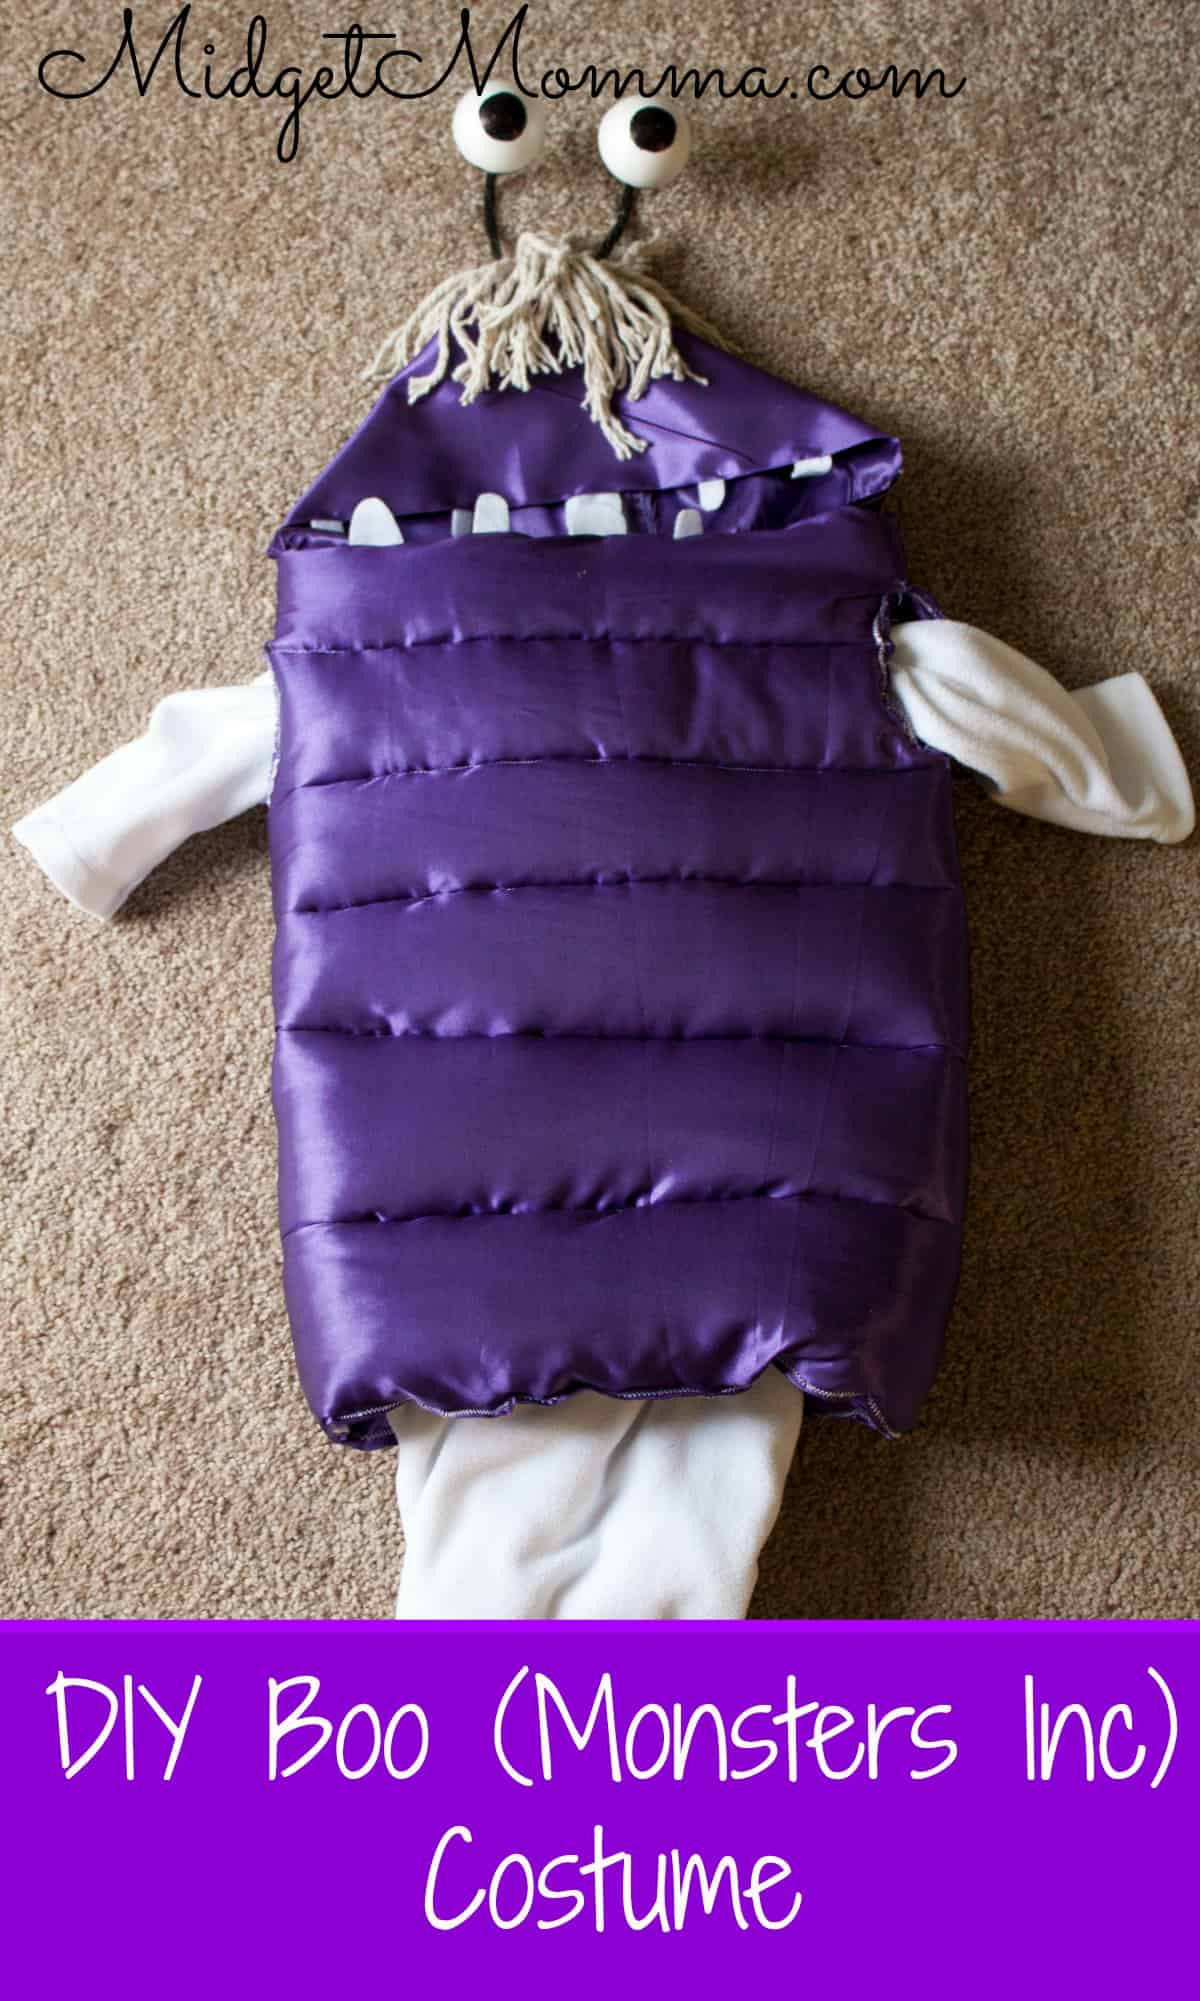 Boo Costume DIY  DIY Boo From Monster Inc Costume